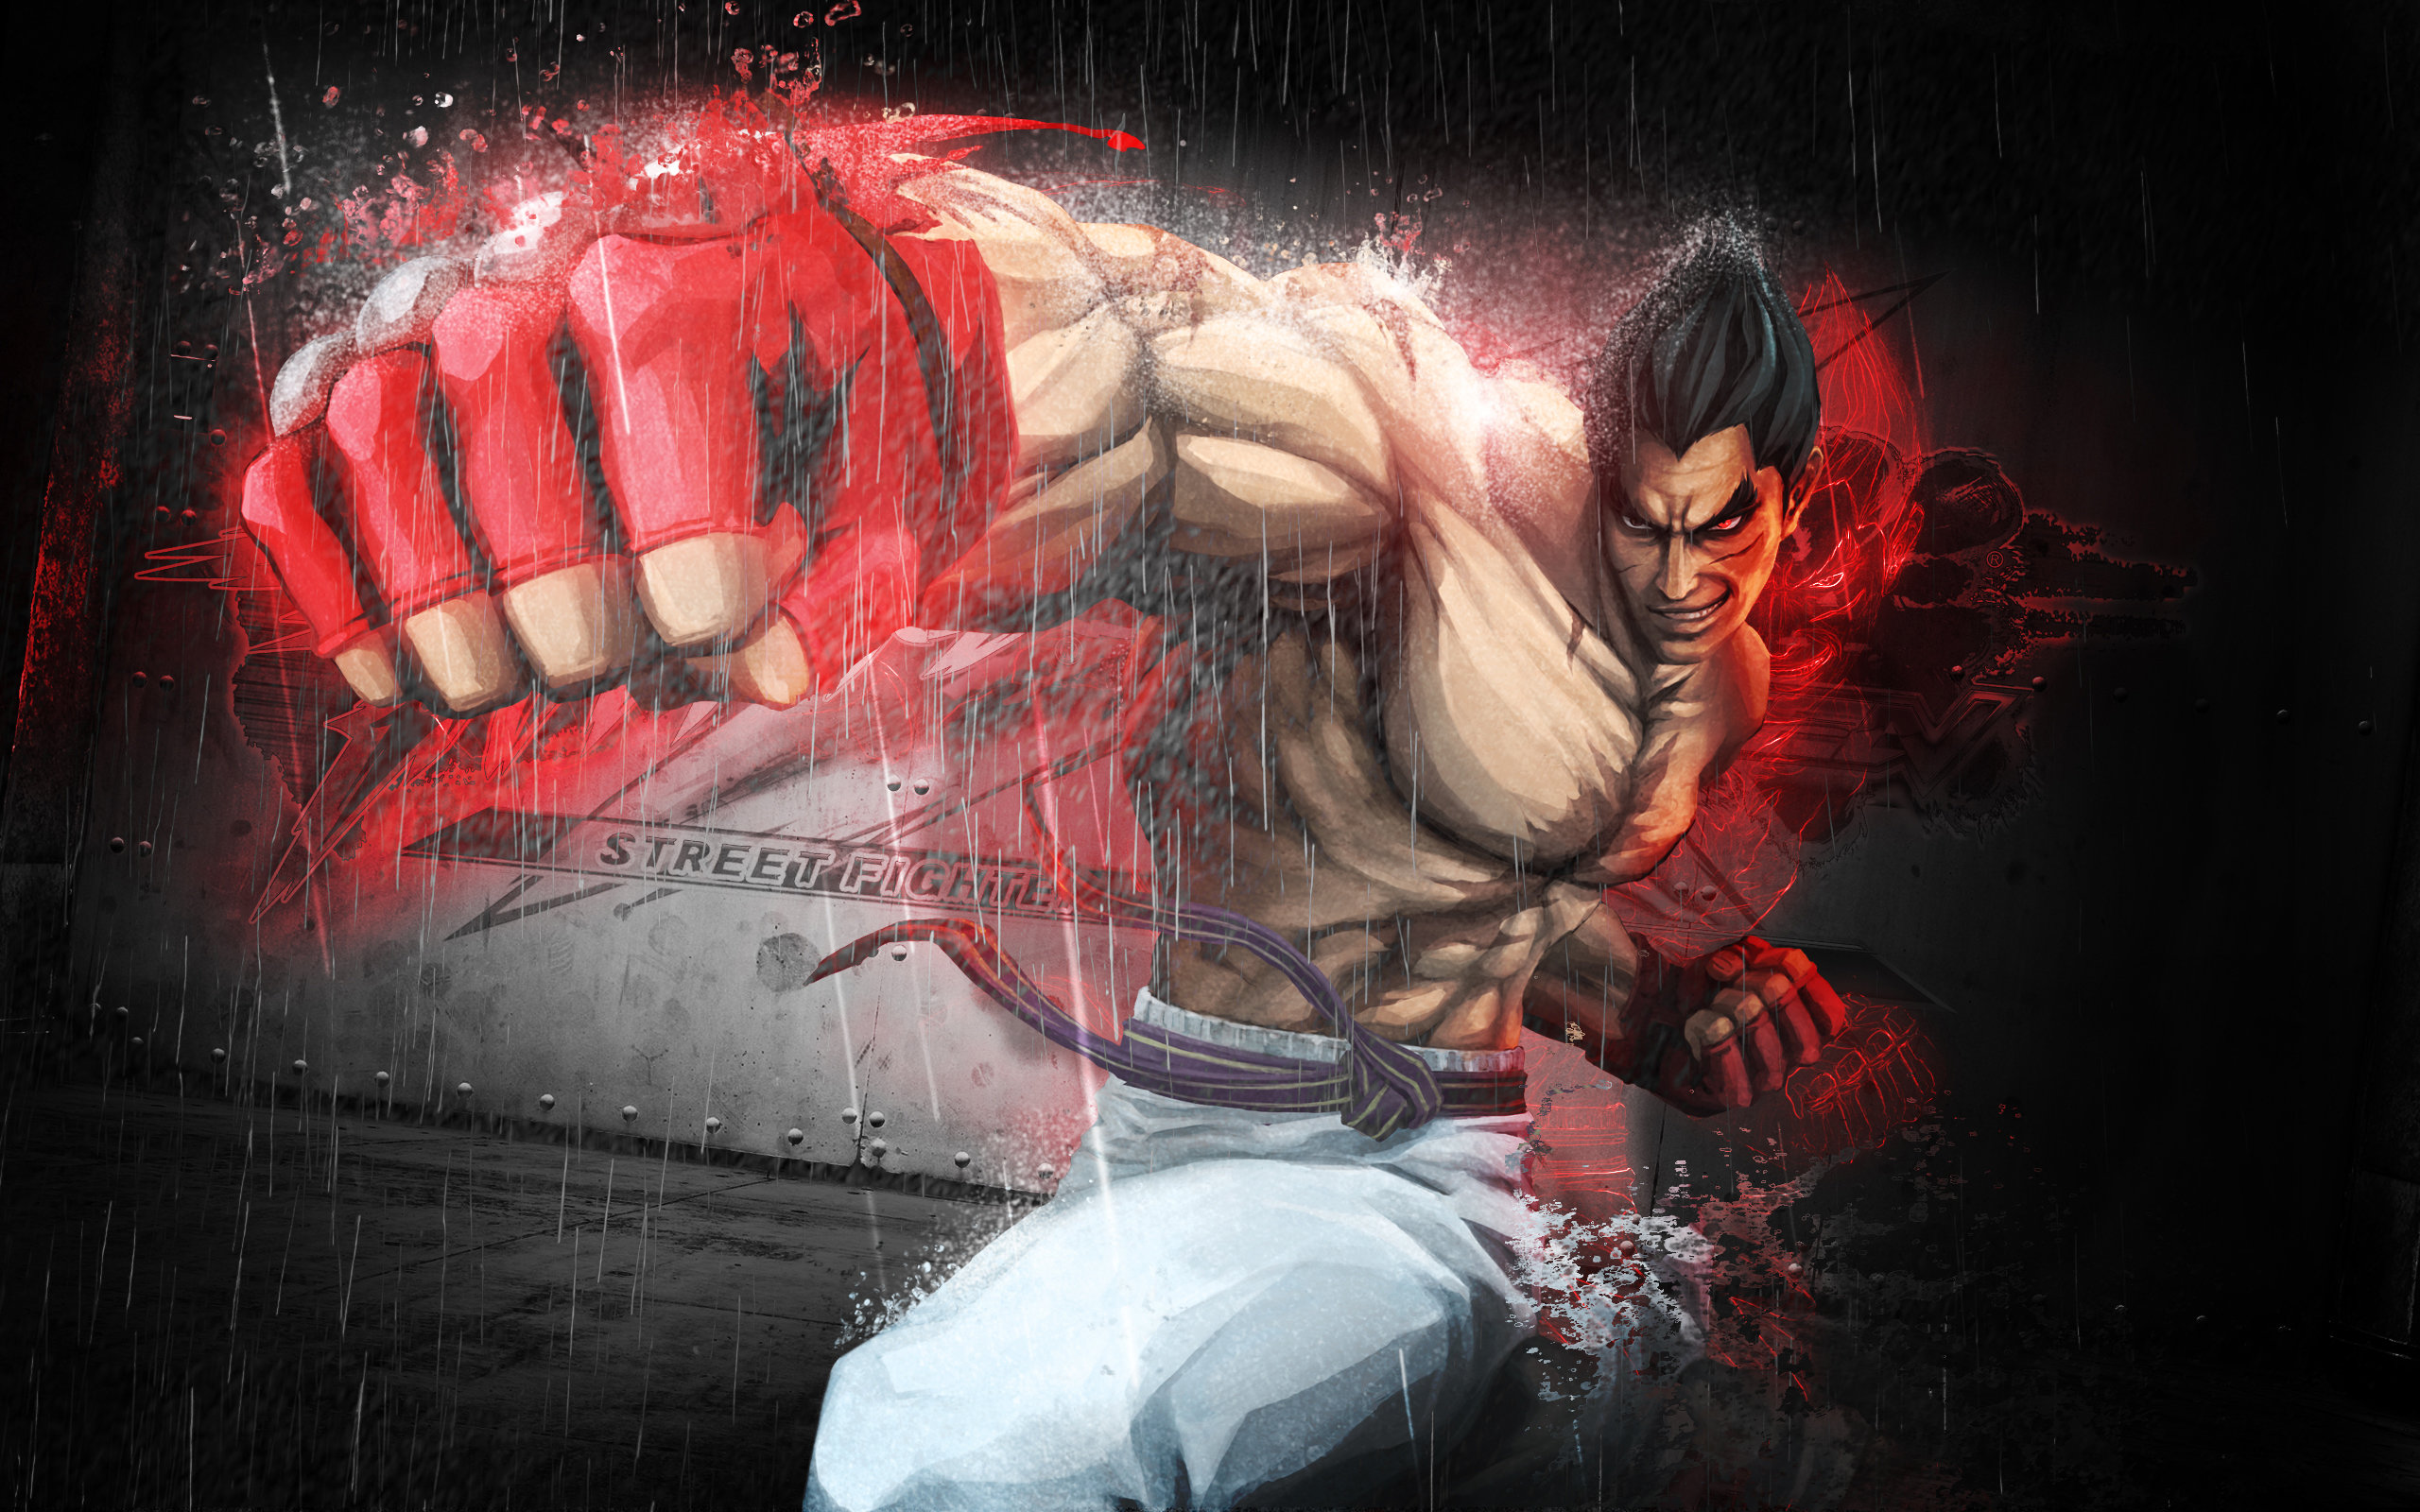 Street Fighter X Tekken Wallpapers Hd For Desktop Backgrounds